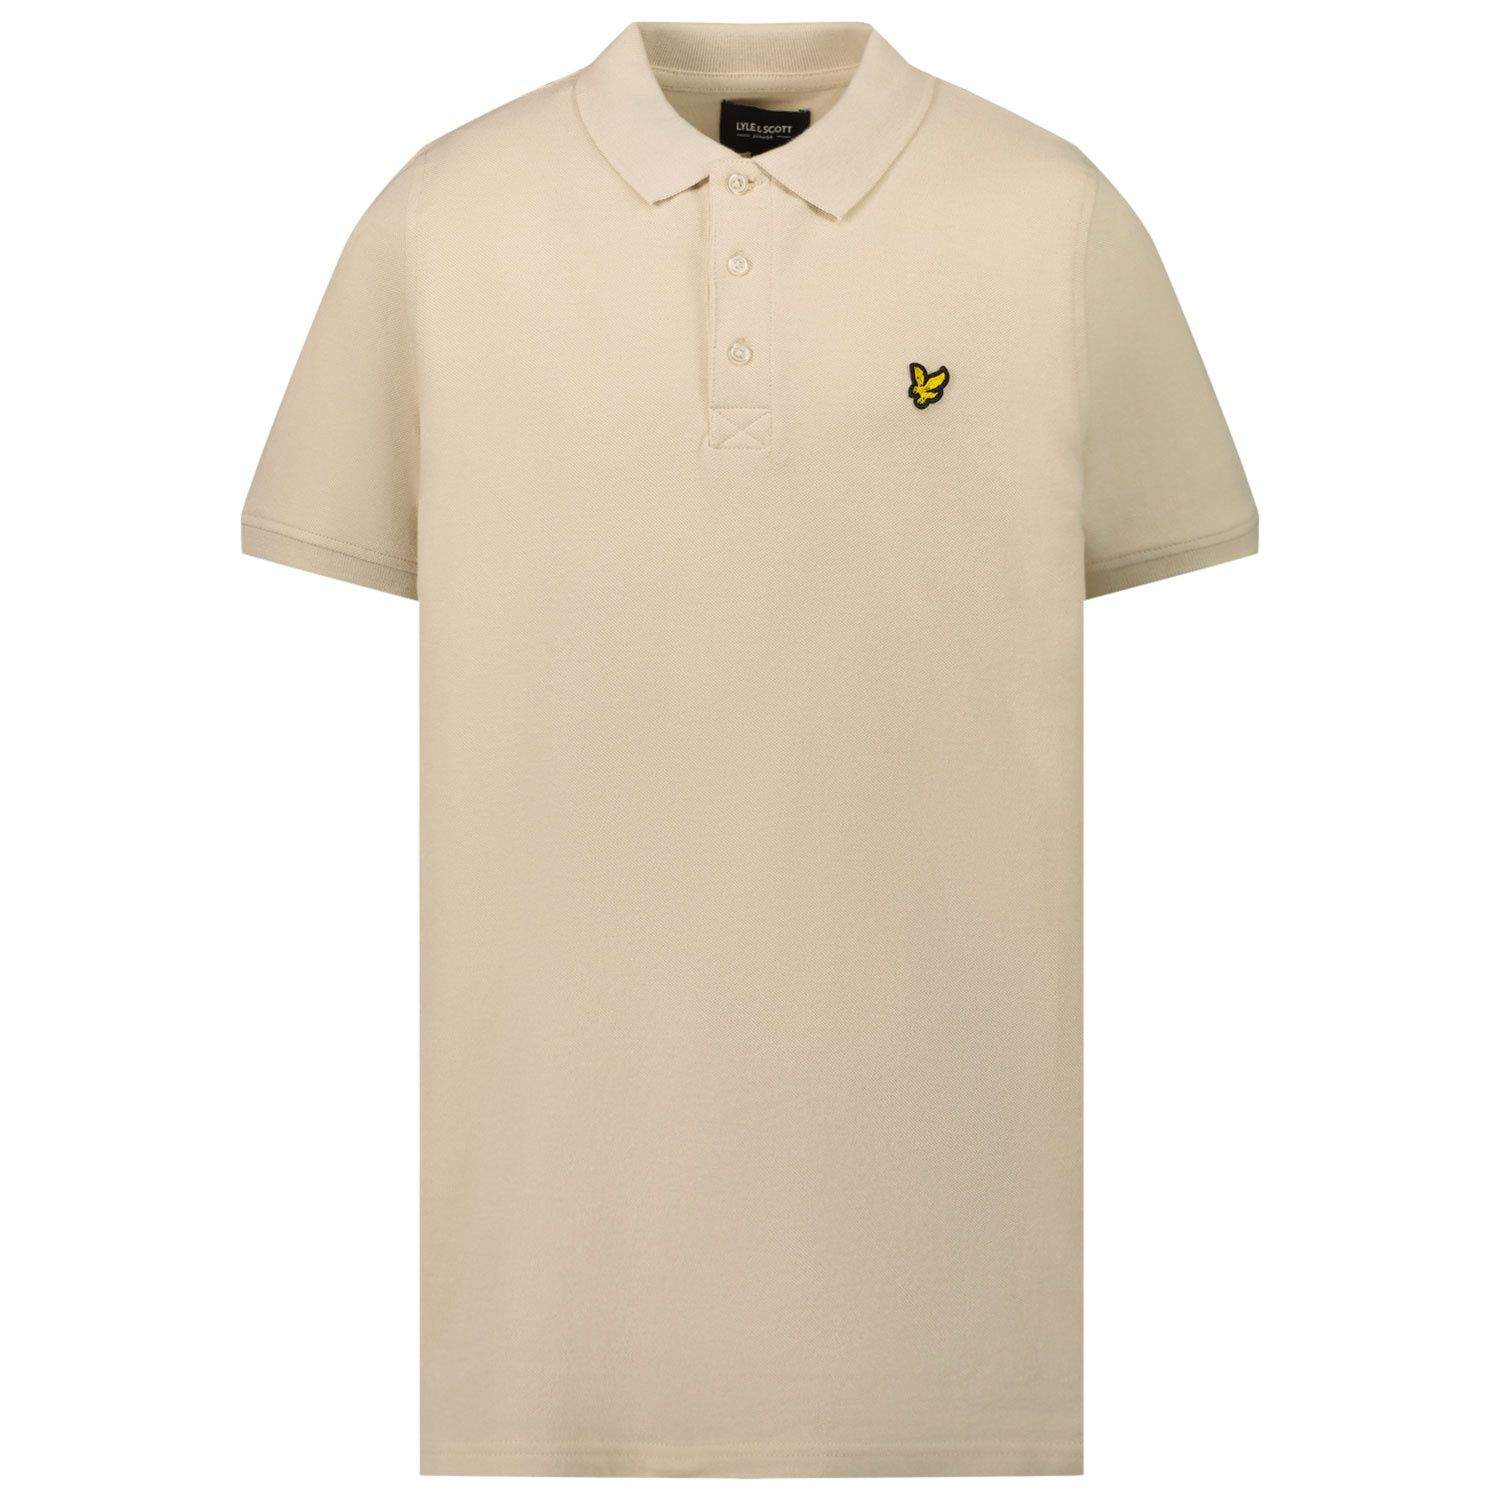 Picture of Lyle & Scott LSC0145S kids polo shirt sand